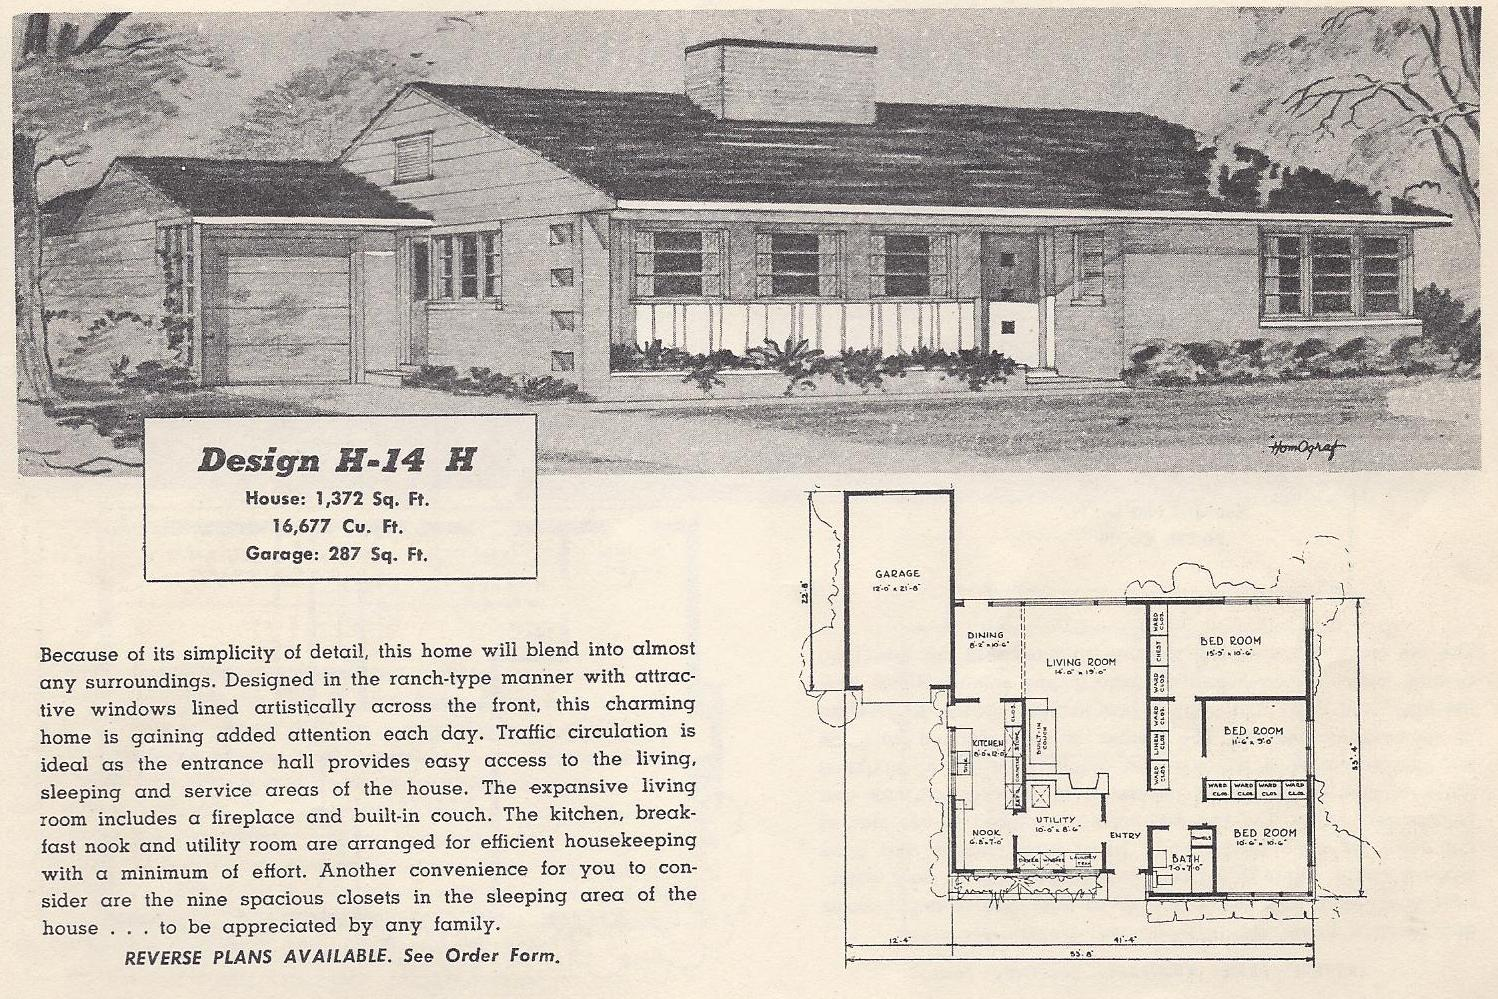 Vintage house plans 14h antique alter ego for Vintage ranch house plans